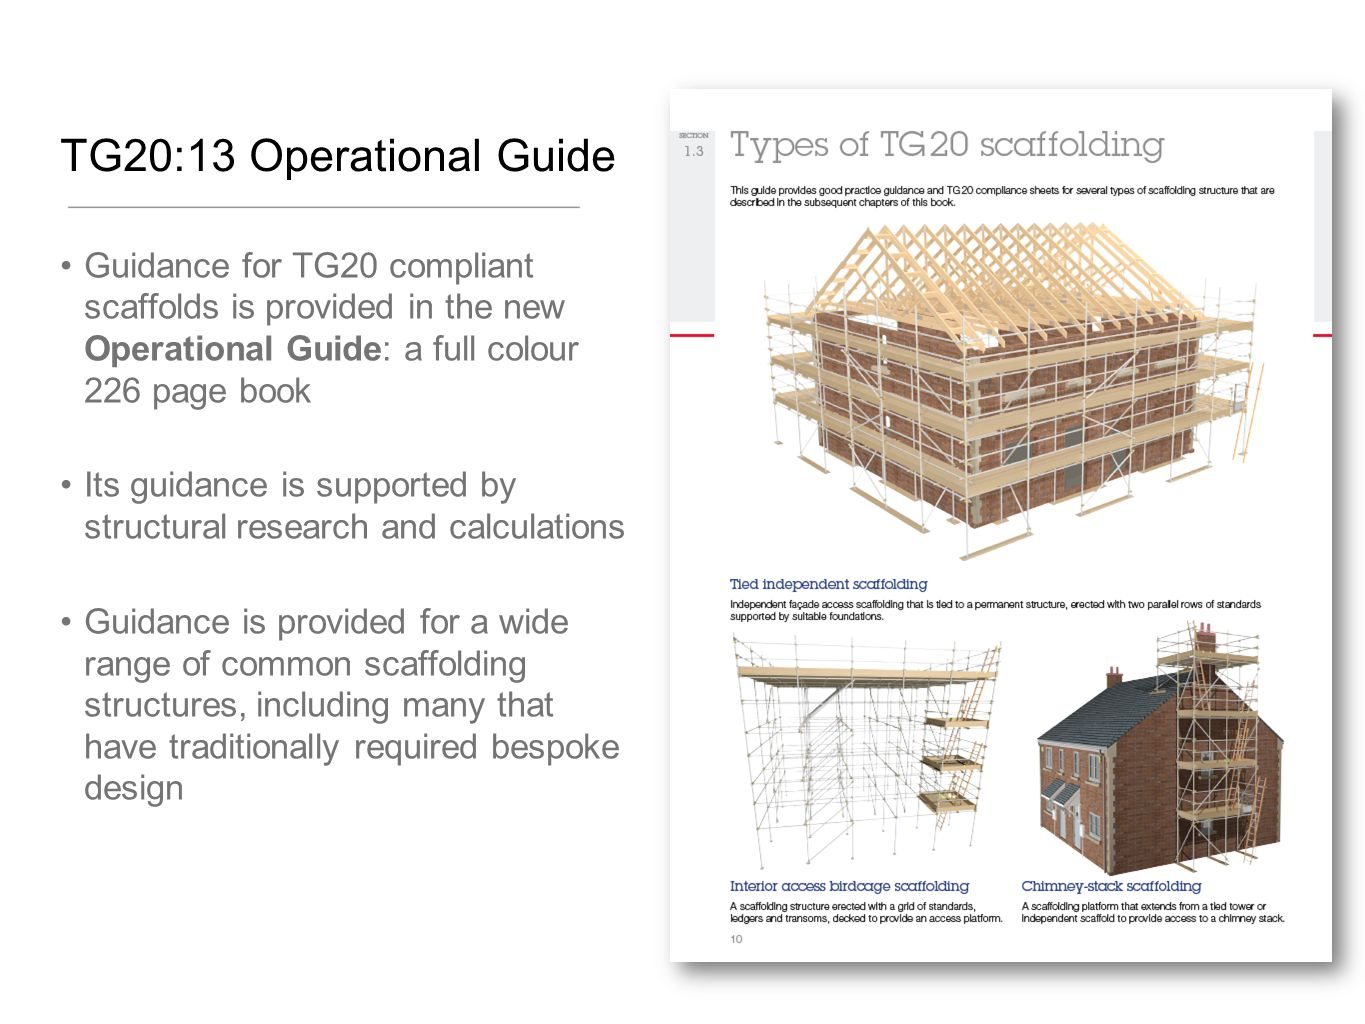 TG20:13 Operational Guide Guidance for TG20 compliant scaffolds is provided in the new Operational Guide: a full colour 226 page book.